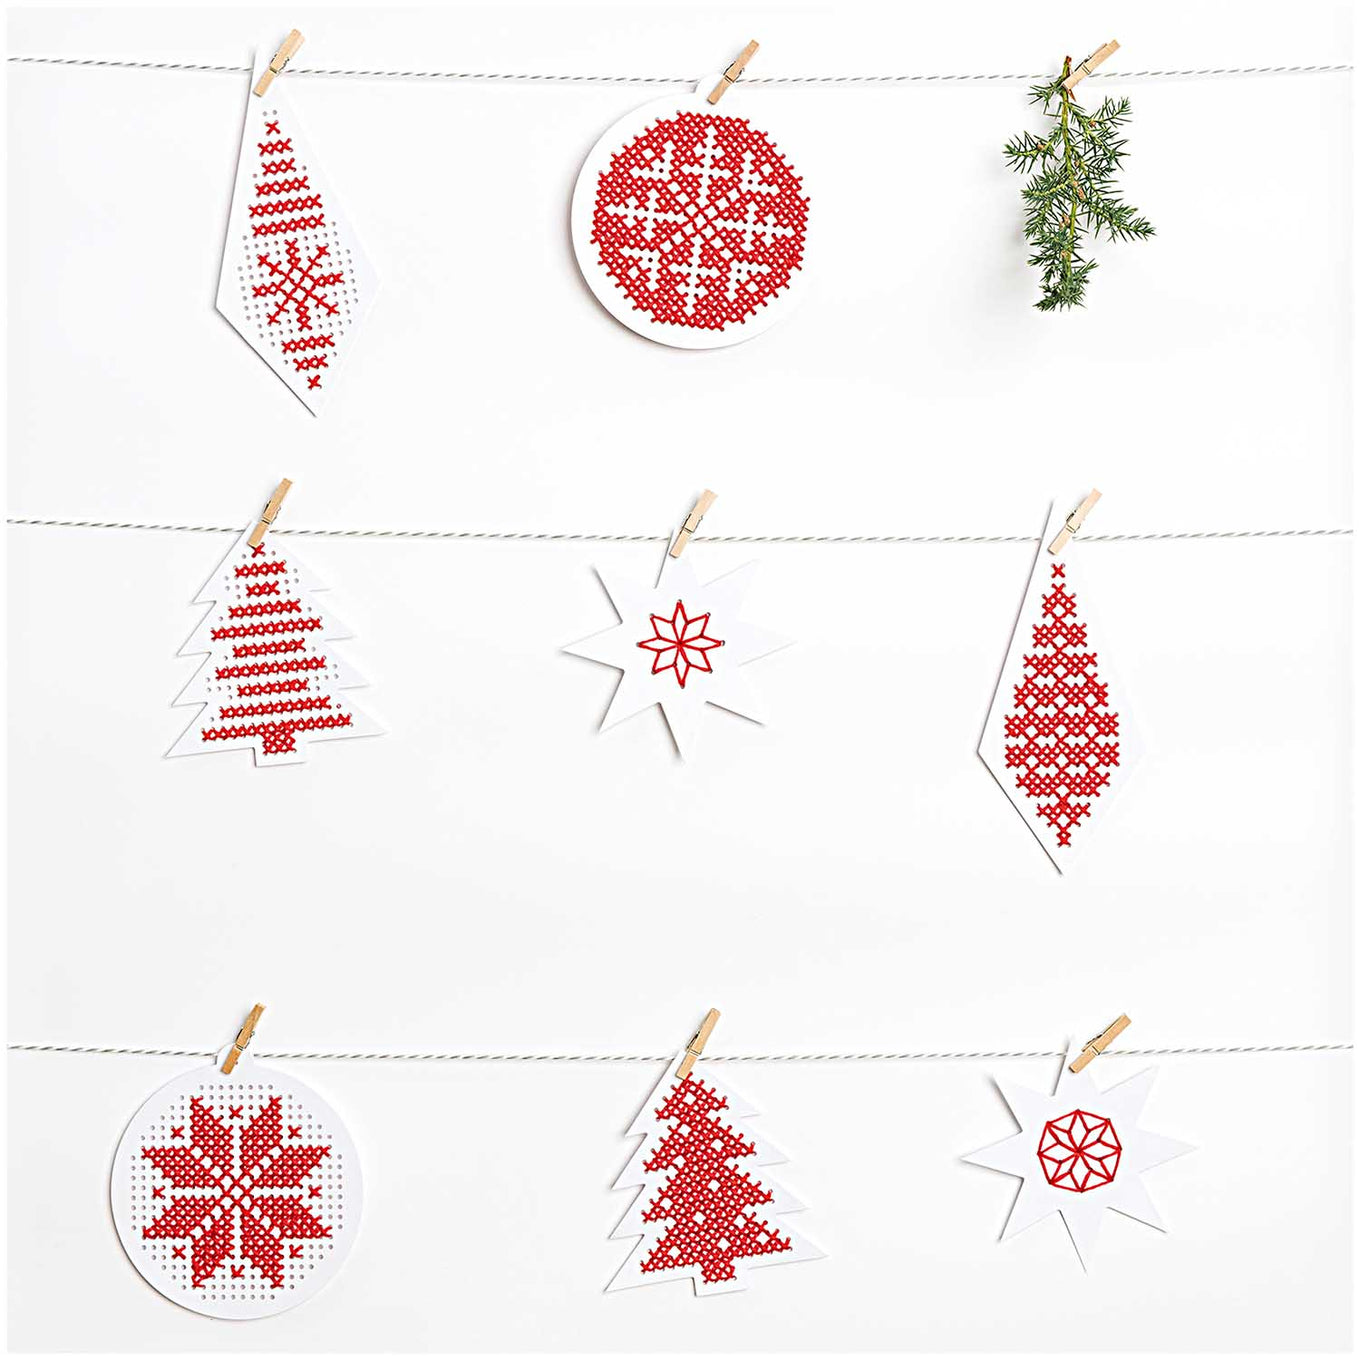 Christmas Embroidery Board Kit With Thread